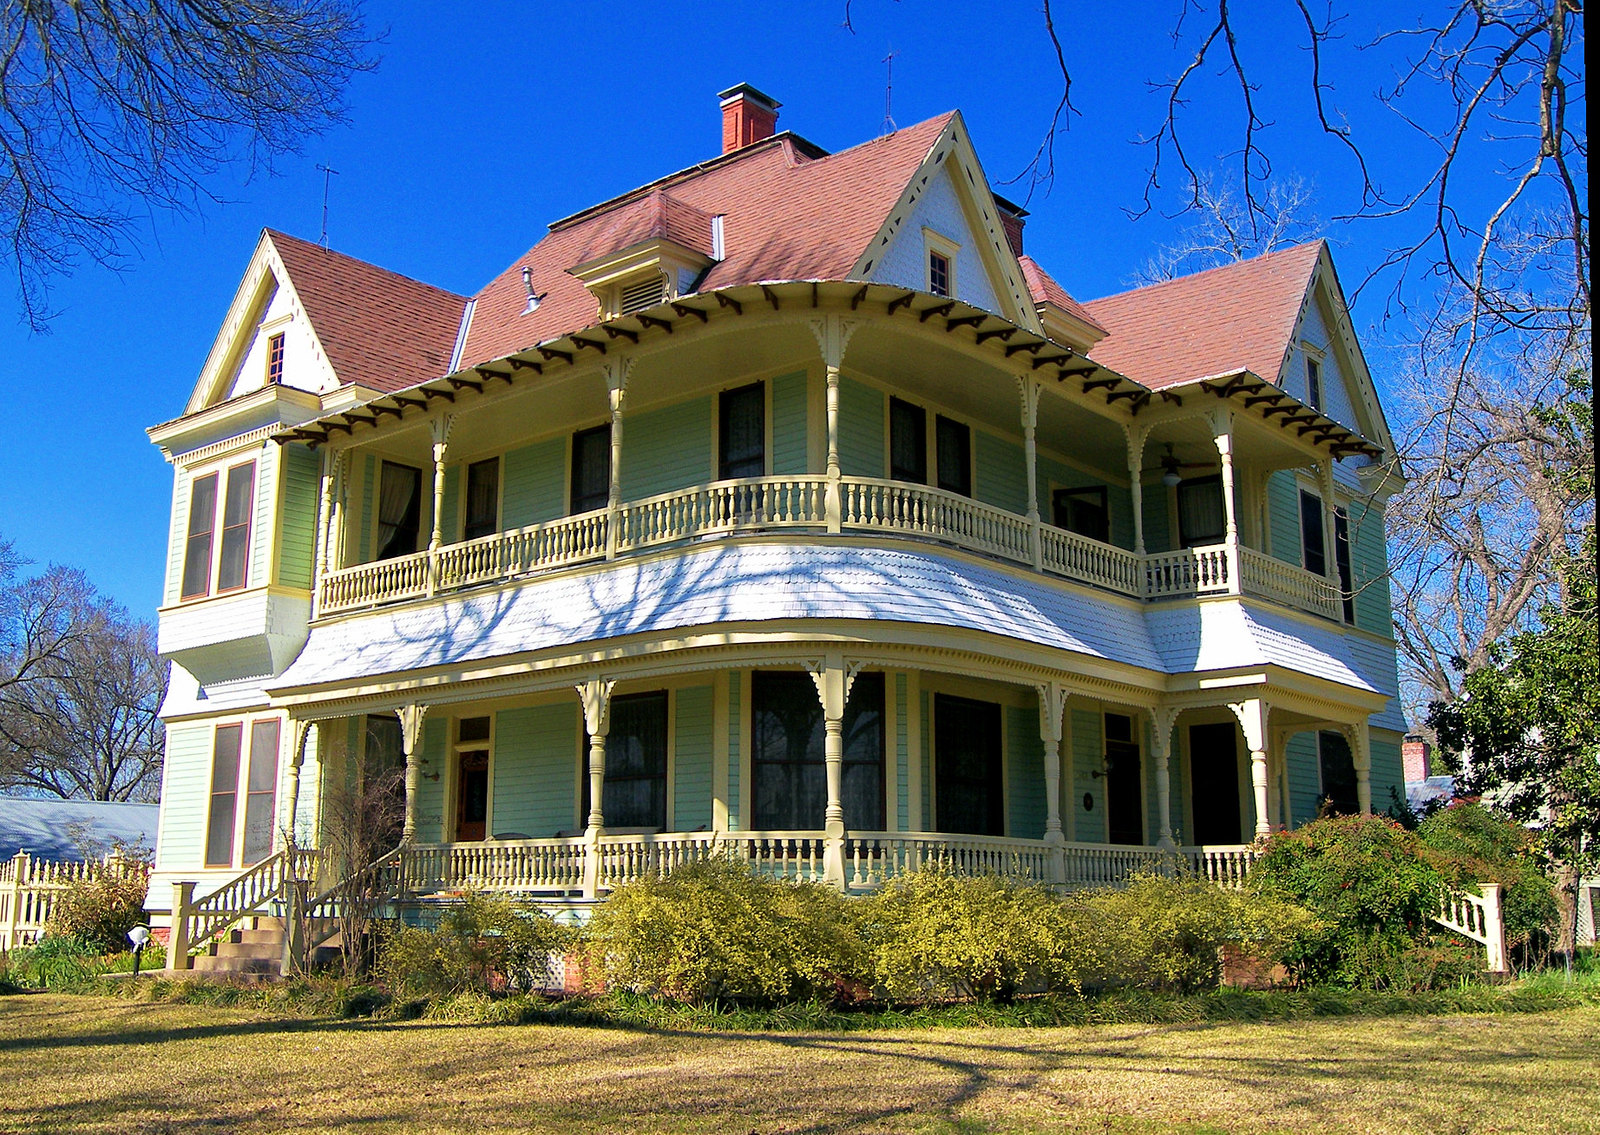 The H. P. Luckett House in Bastrop, Texas. Credit Larry D. Moore